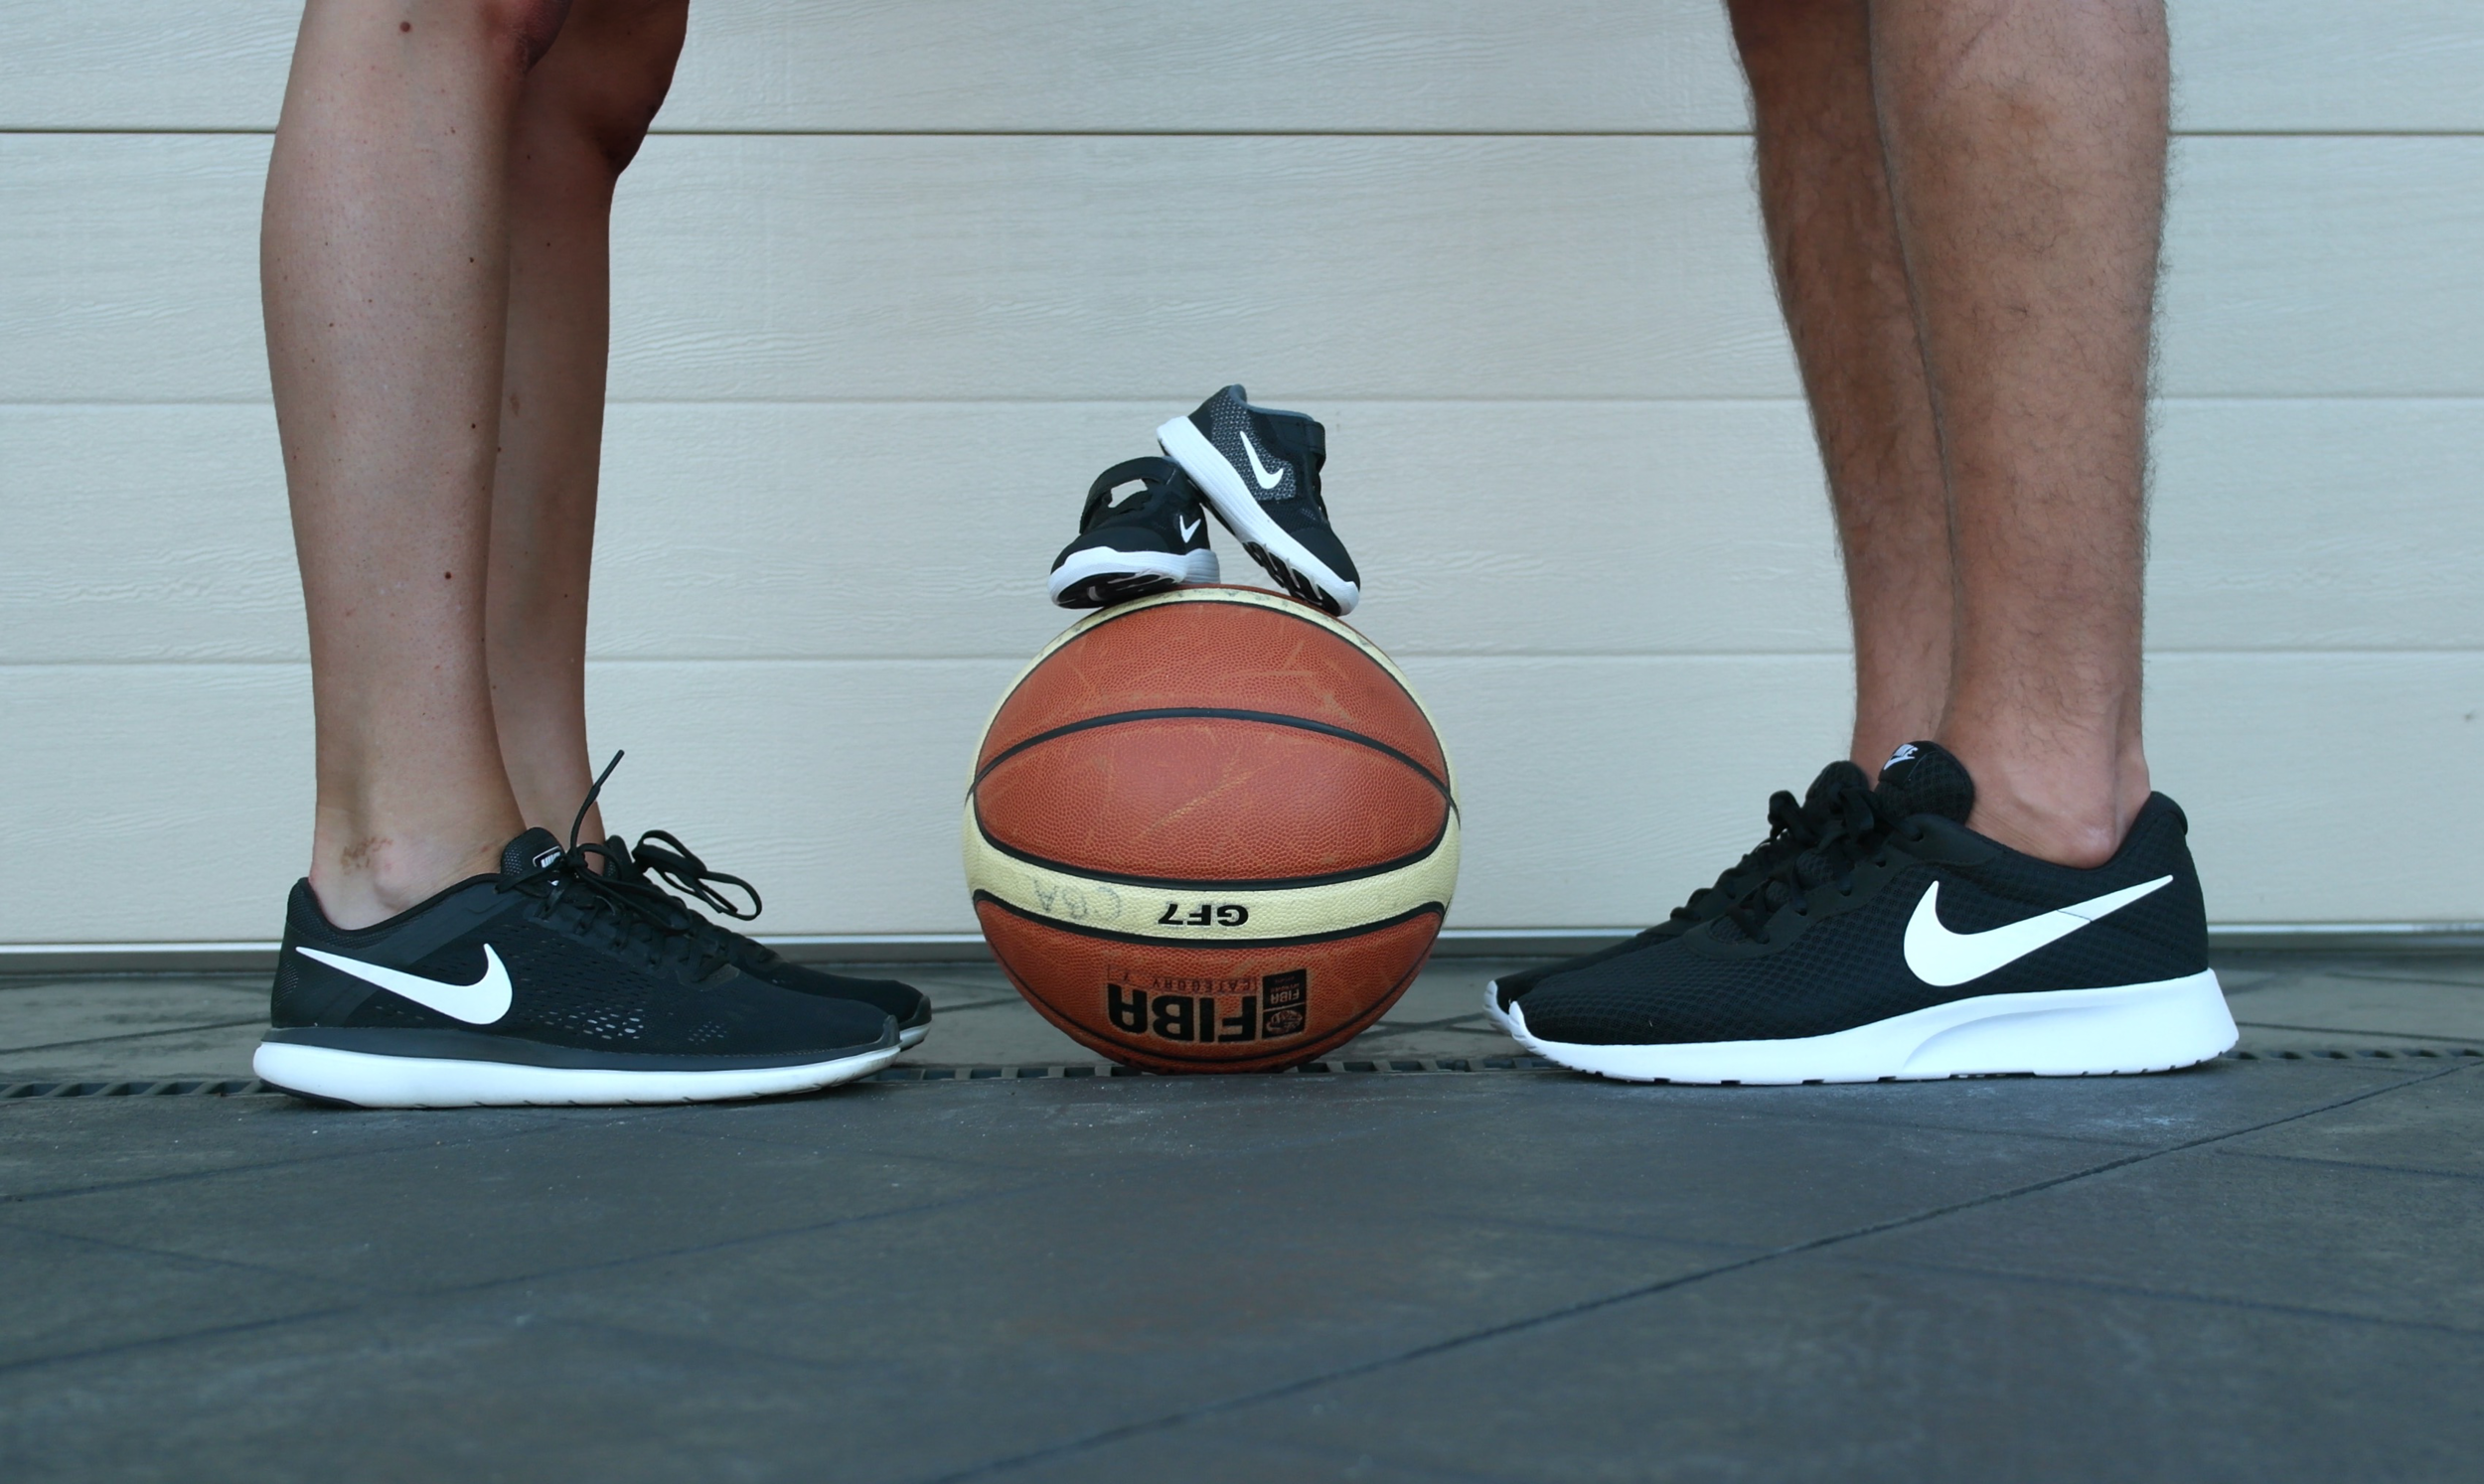 our social media pregnancy announcement (hubby is a basketball player, it's how we met)